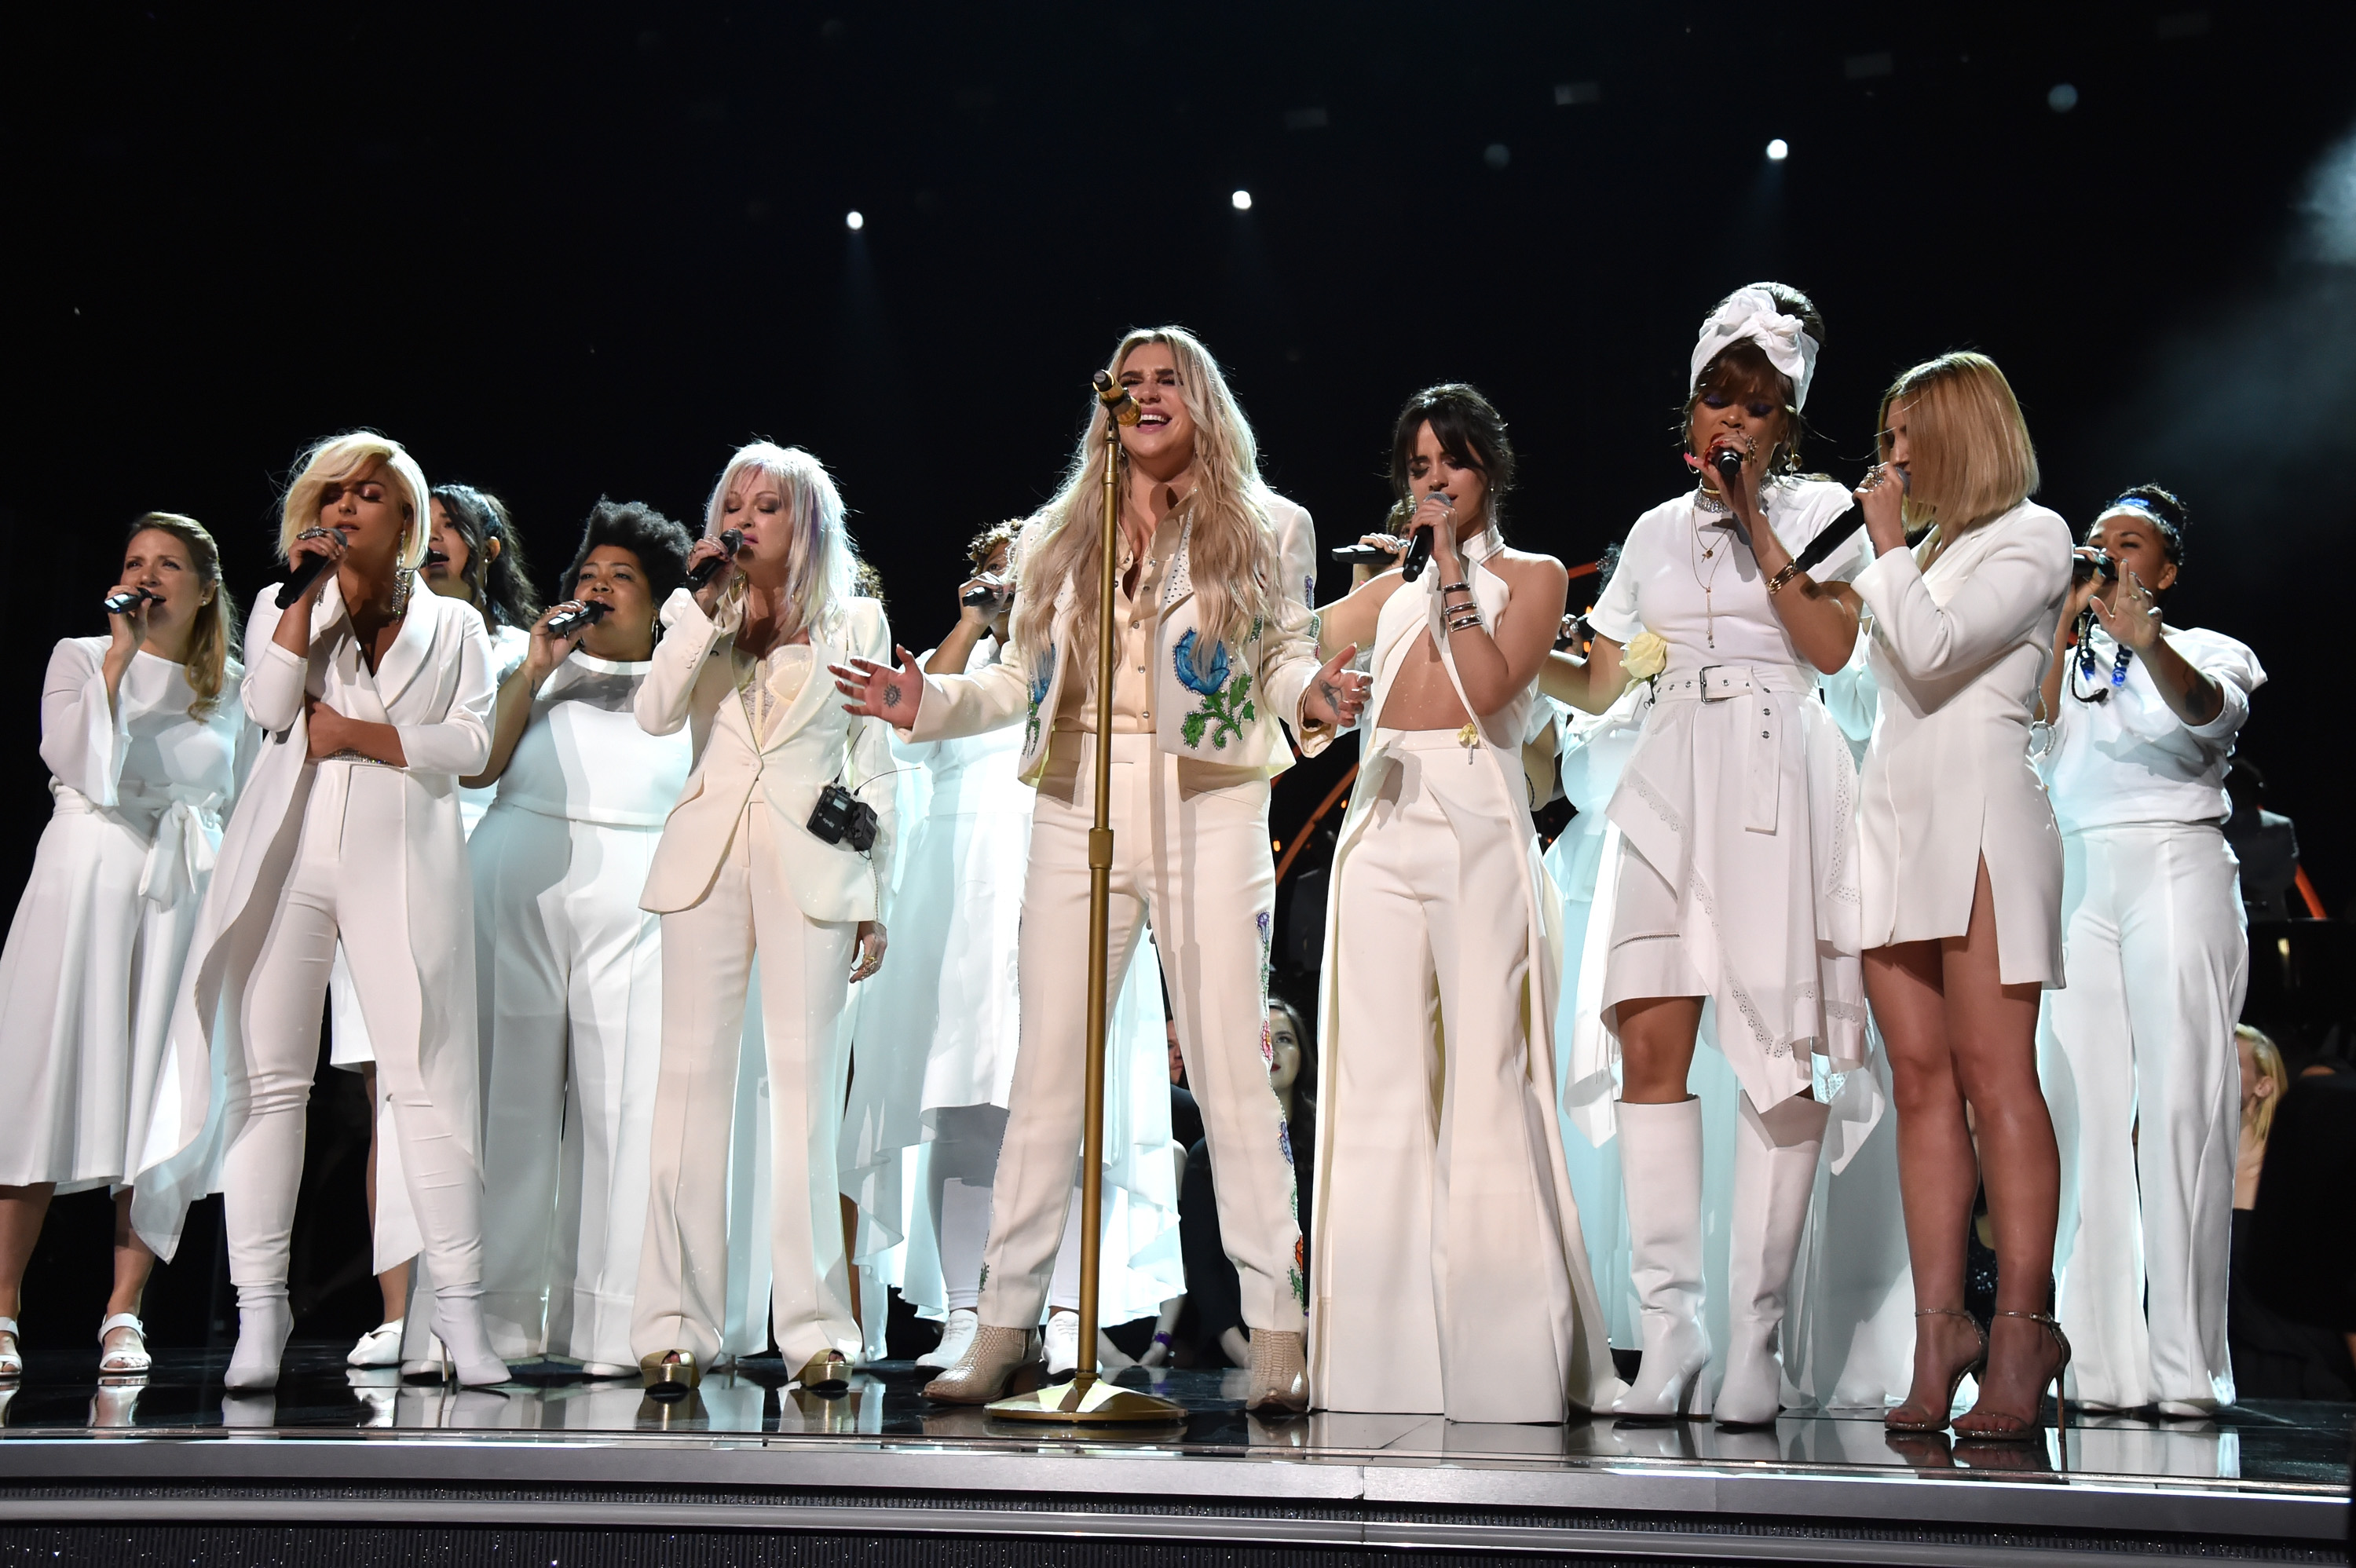 The Resistance Revival Chorus sang with Kesha at the Grammys, and gave a hella inspirational performance